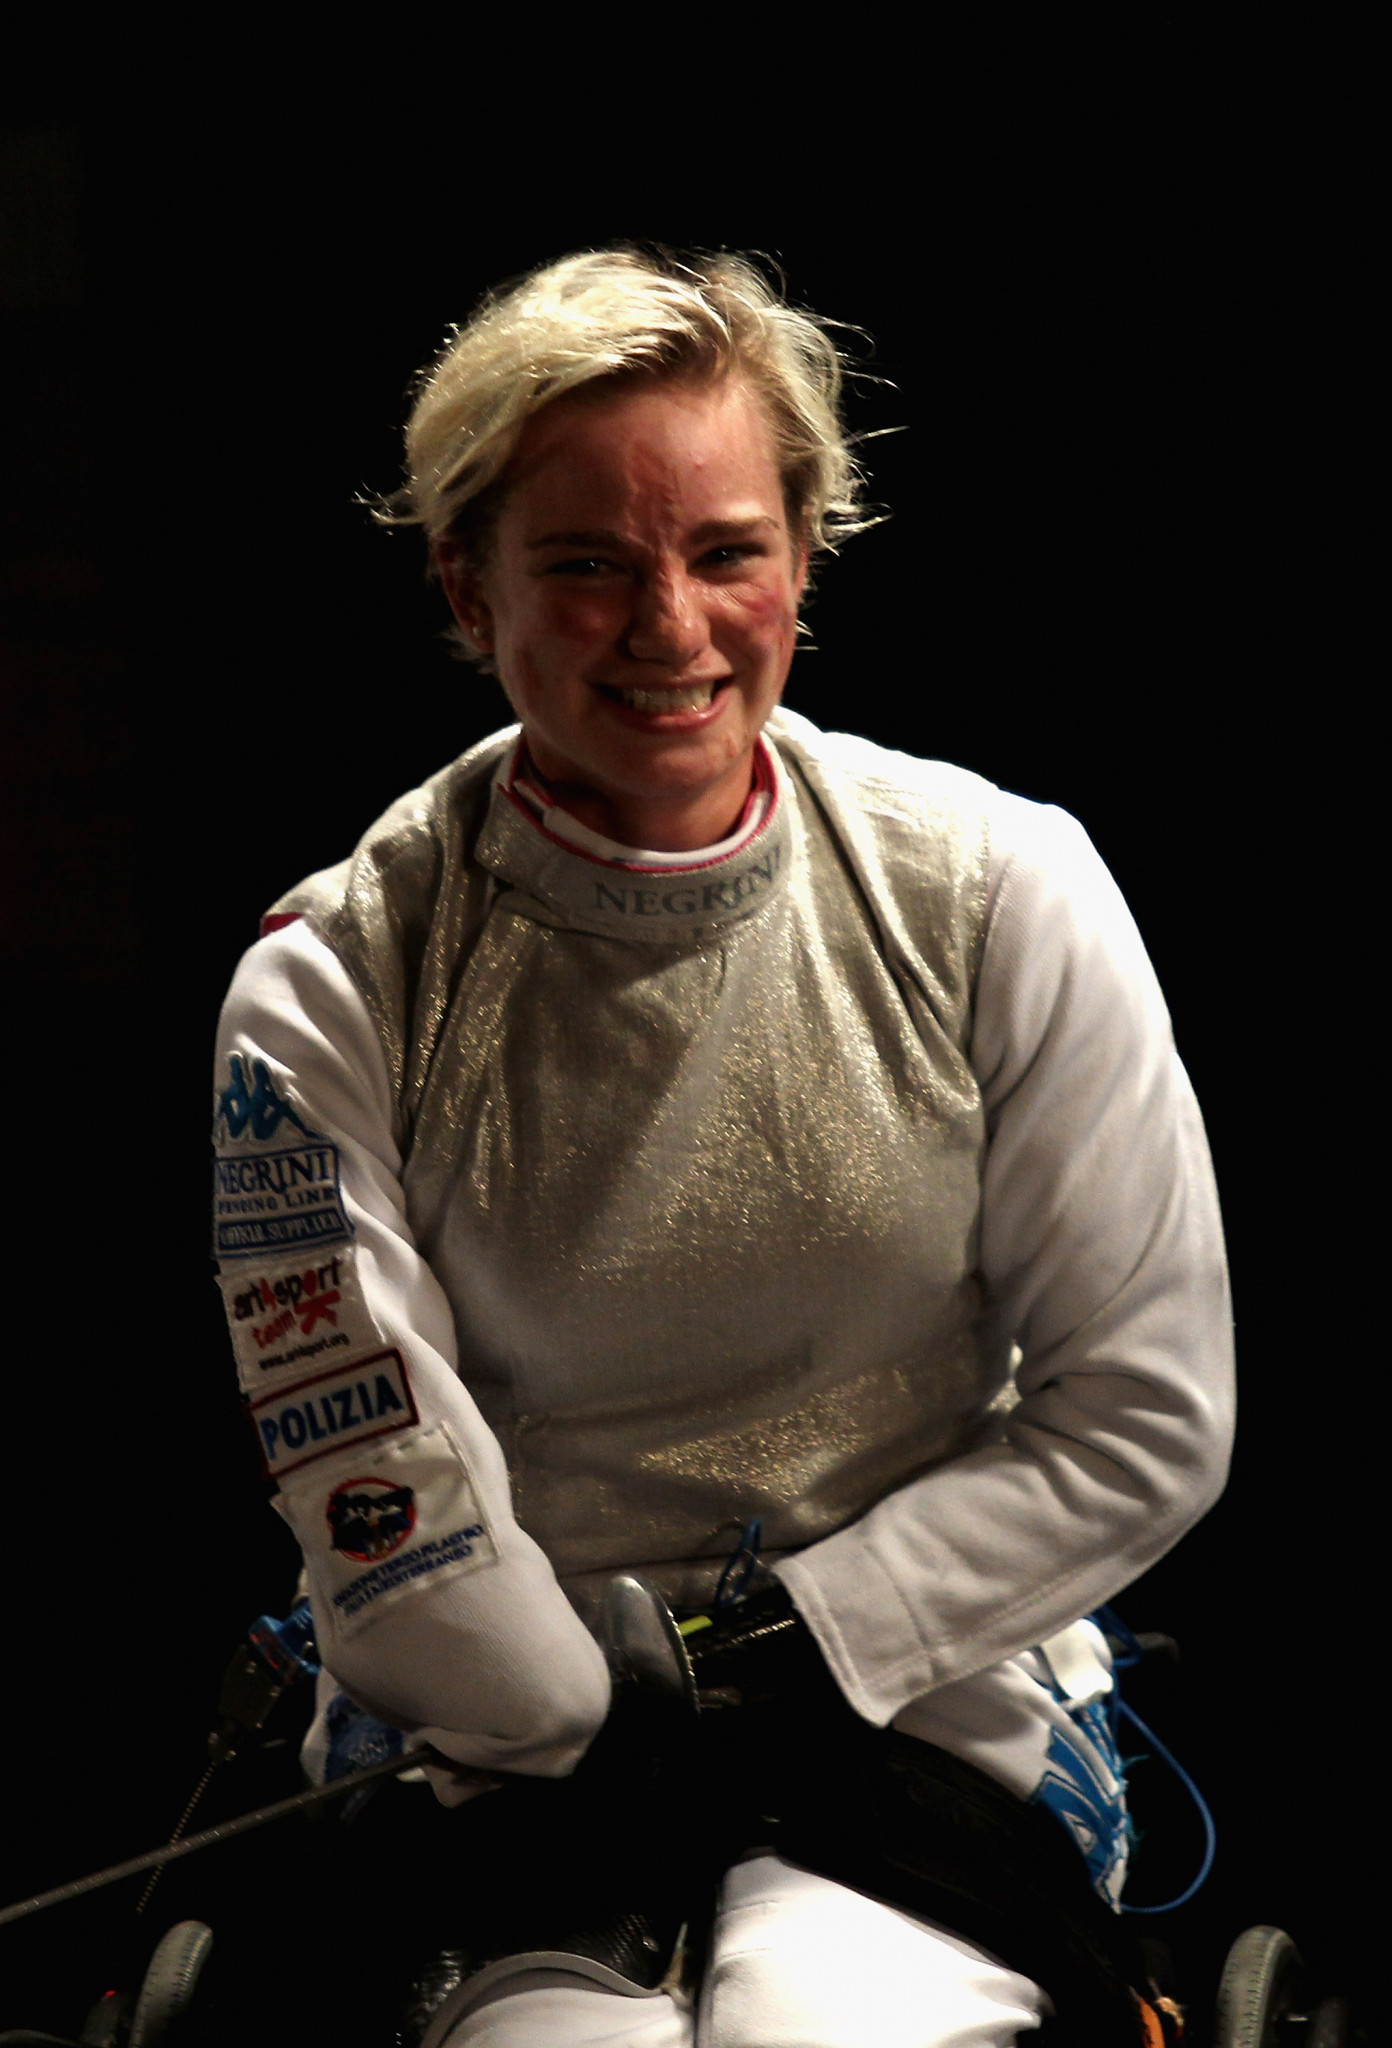 Vio adds second gold as Italy win women's team foil event at IWAS Wheelchair Fencing World Cup